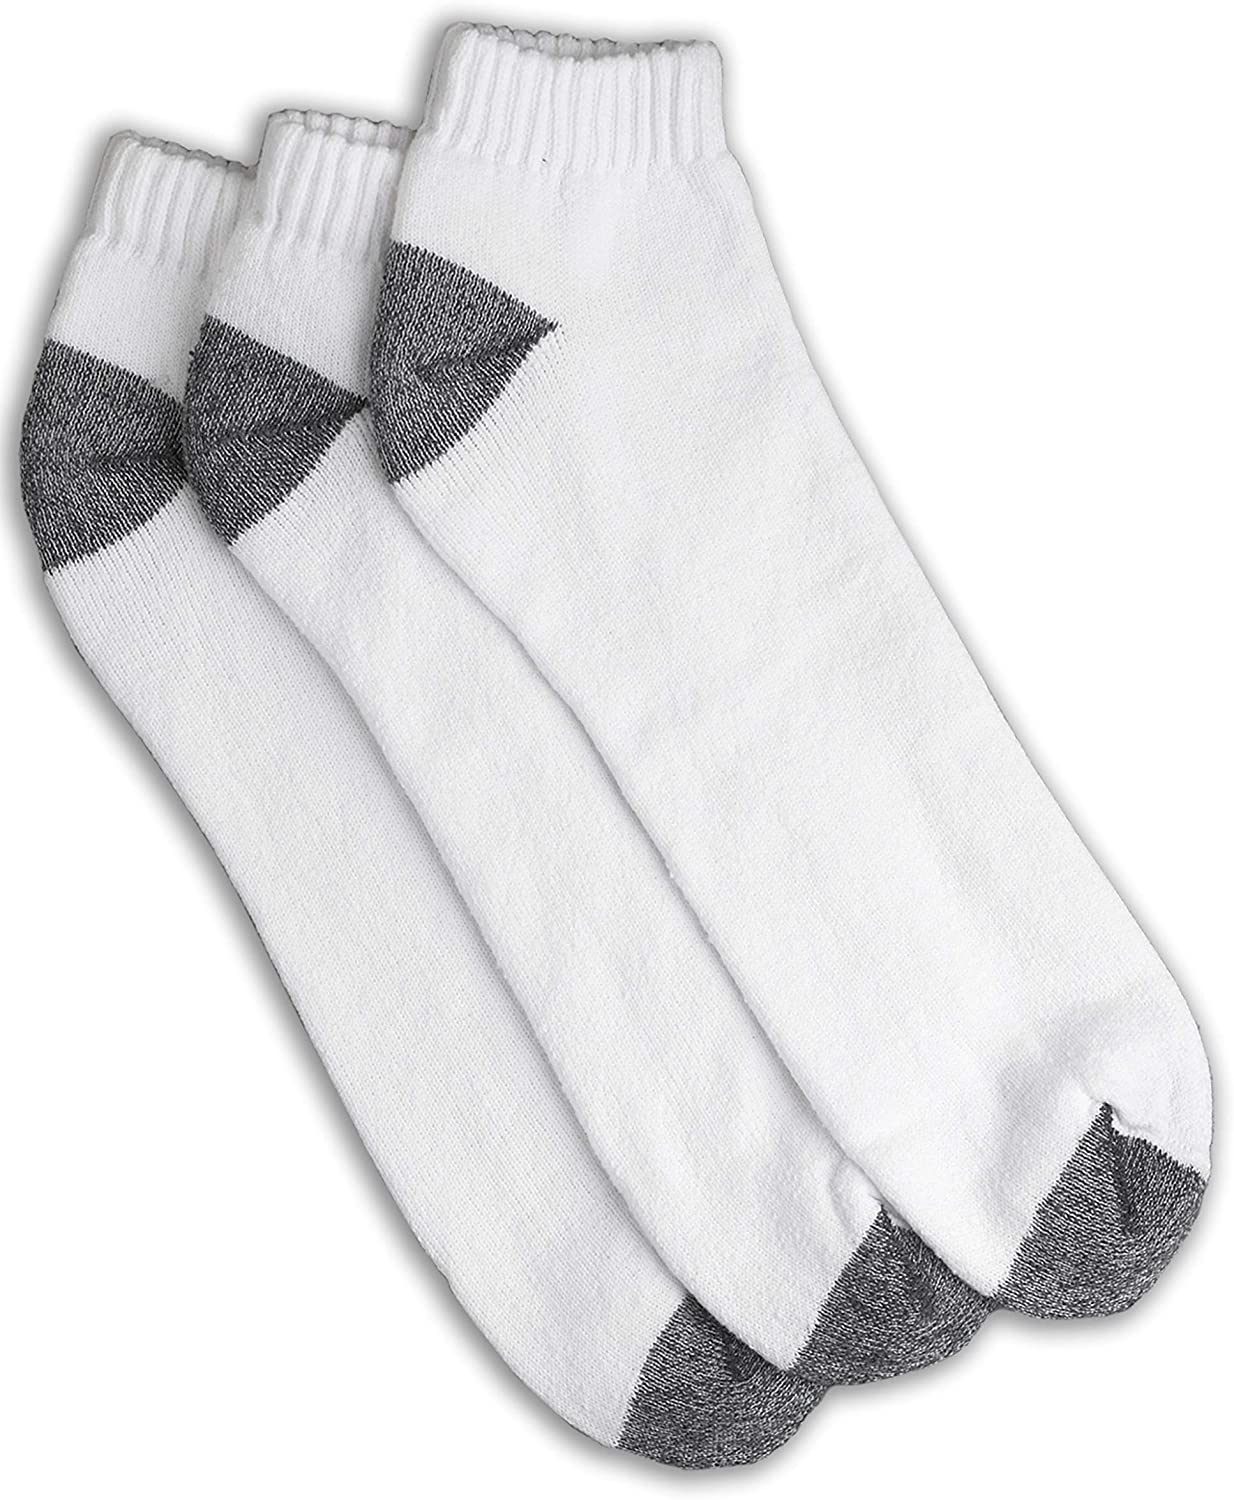 Harbor Bay by DXL Big and Tall Continuous Comfort Low Cut Socks 3 Pairs